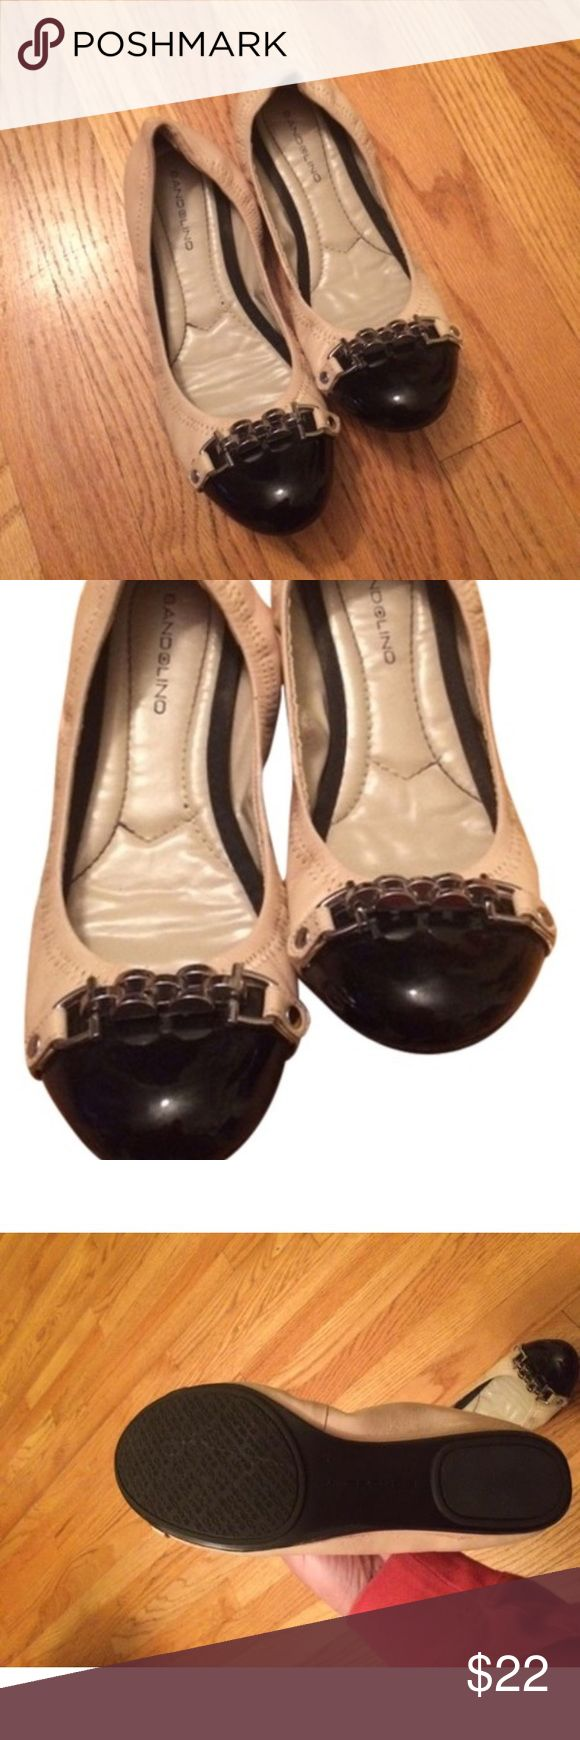 bandolino black and cream ballet flats. Never worn, great to wear to work or casually. Comfortable material. Bandolino Shoes Flats & Loafers